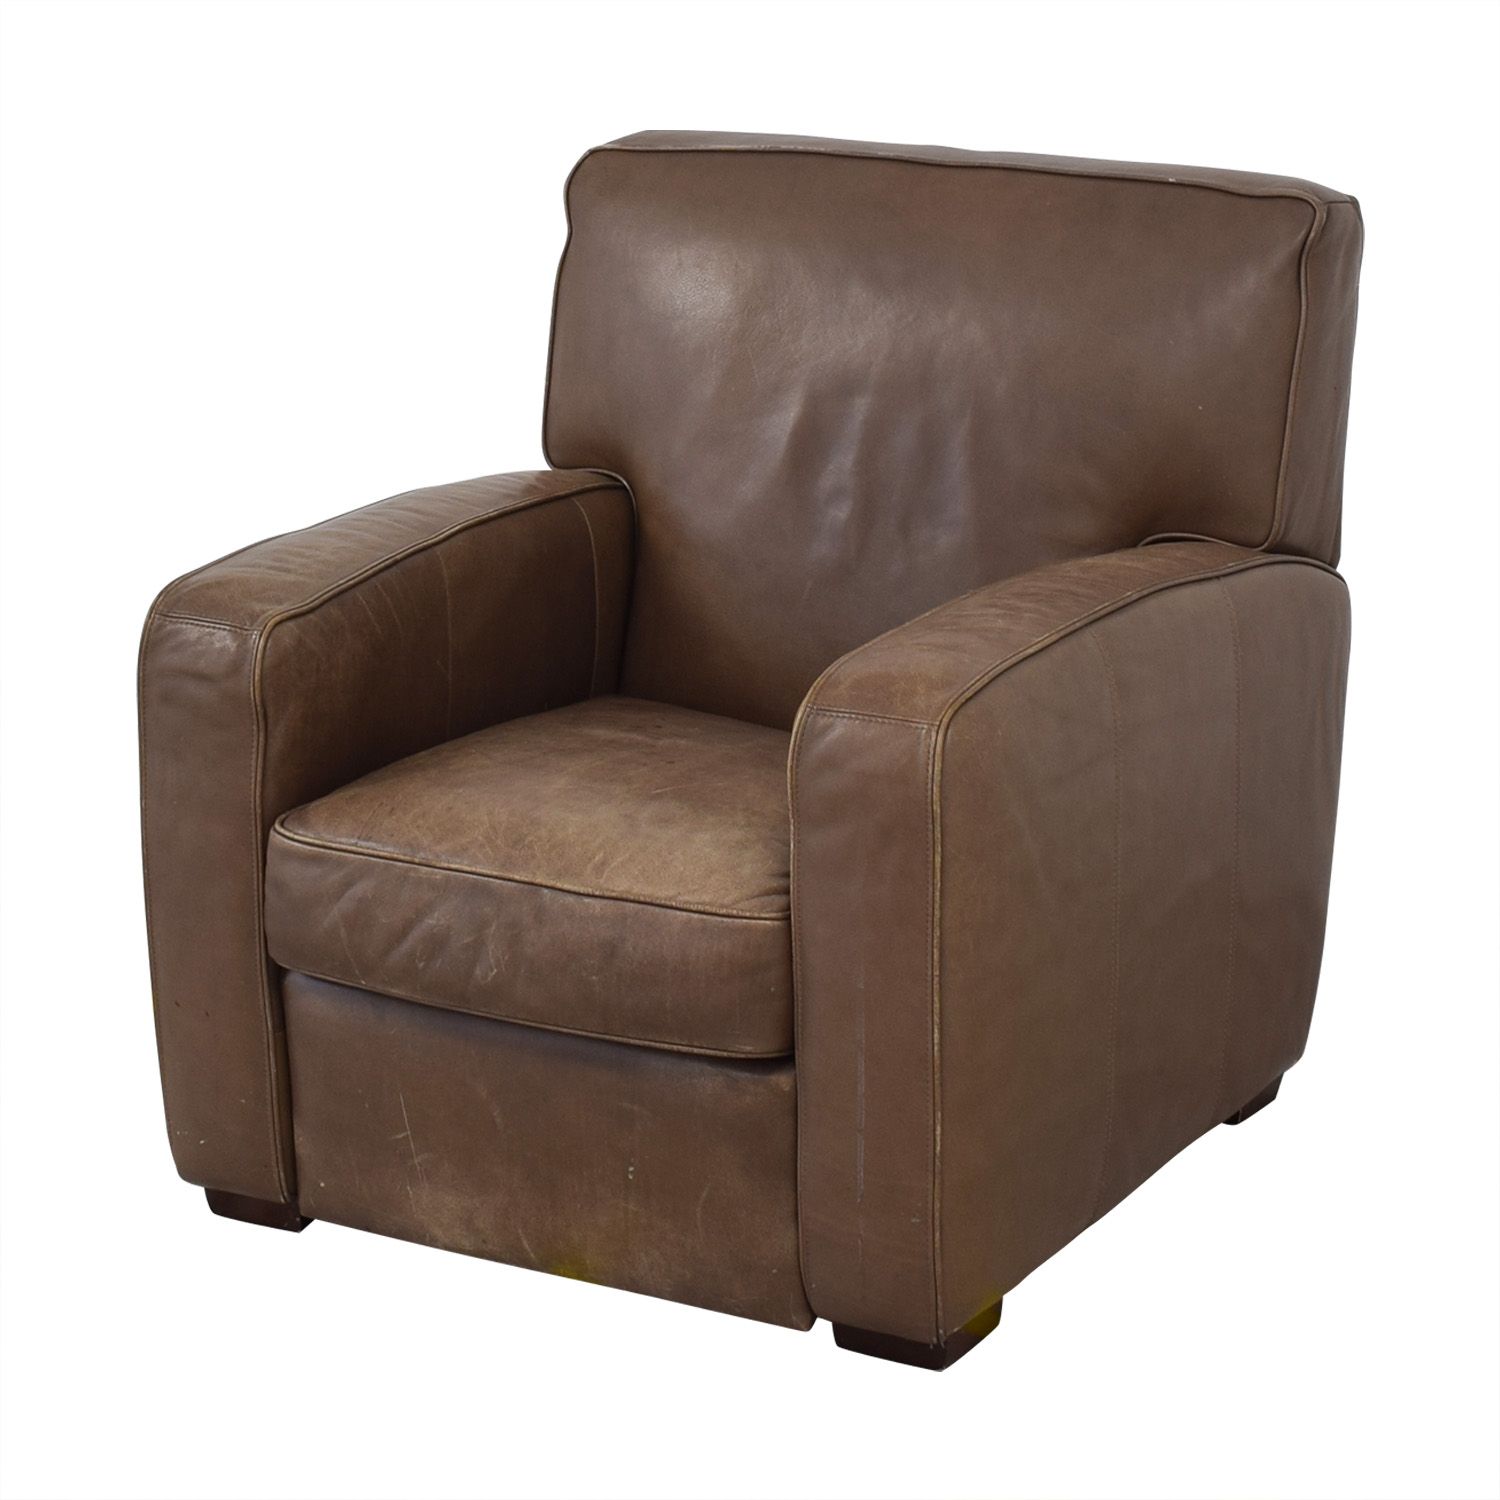 Crate & Barrel Crate & Barrel Leather Recliner Chair discount